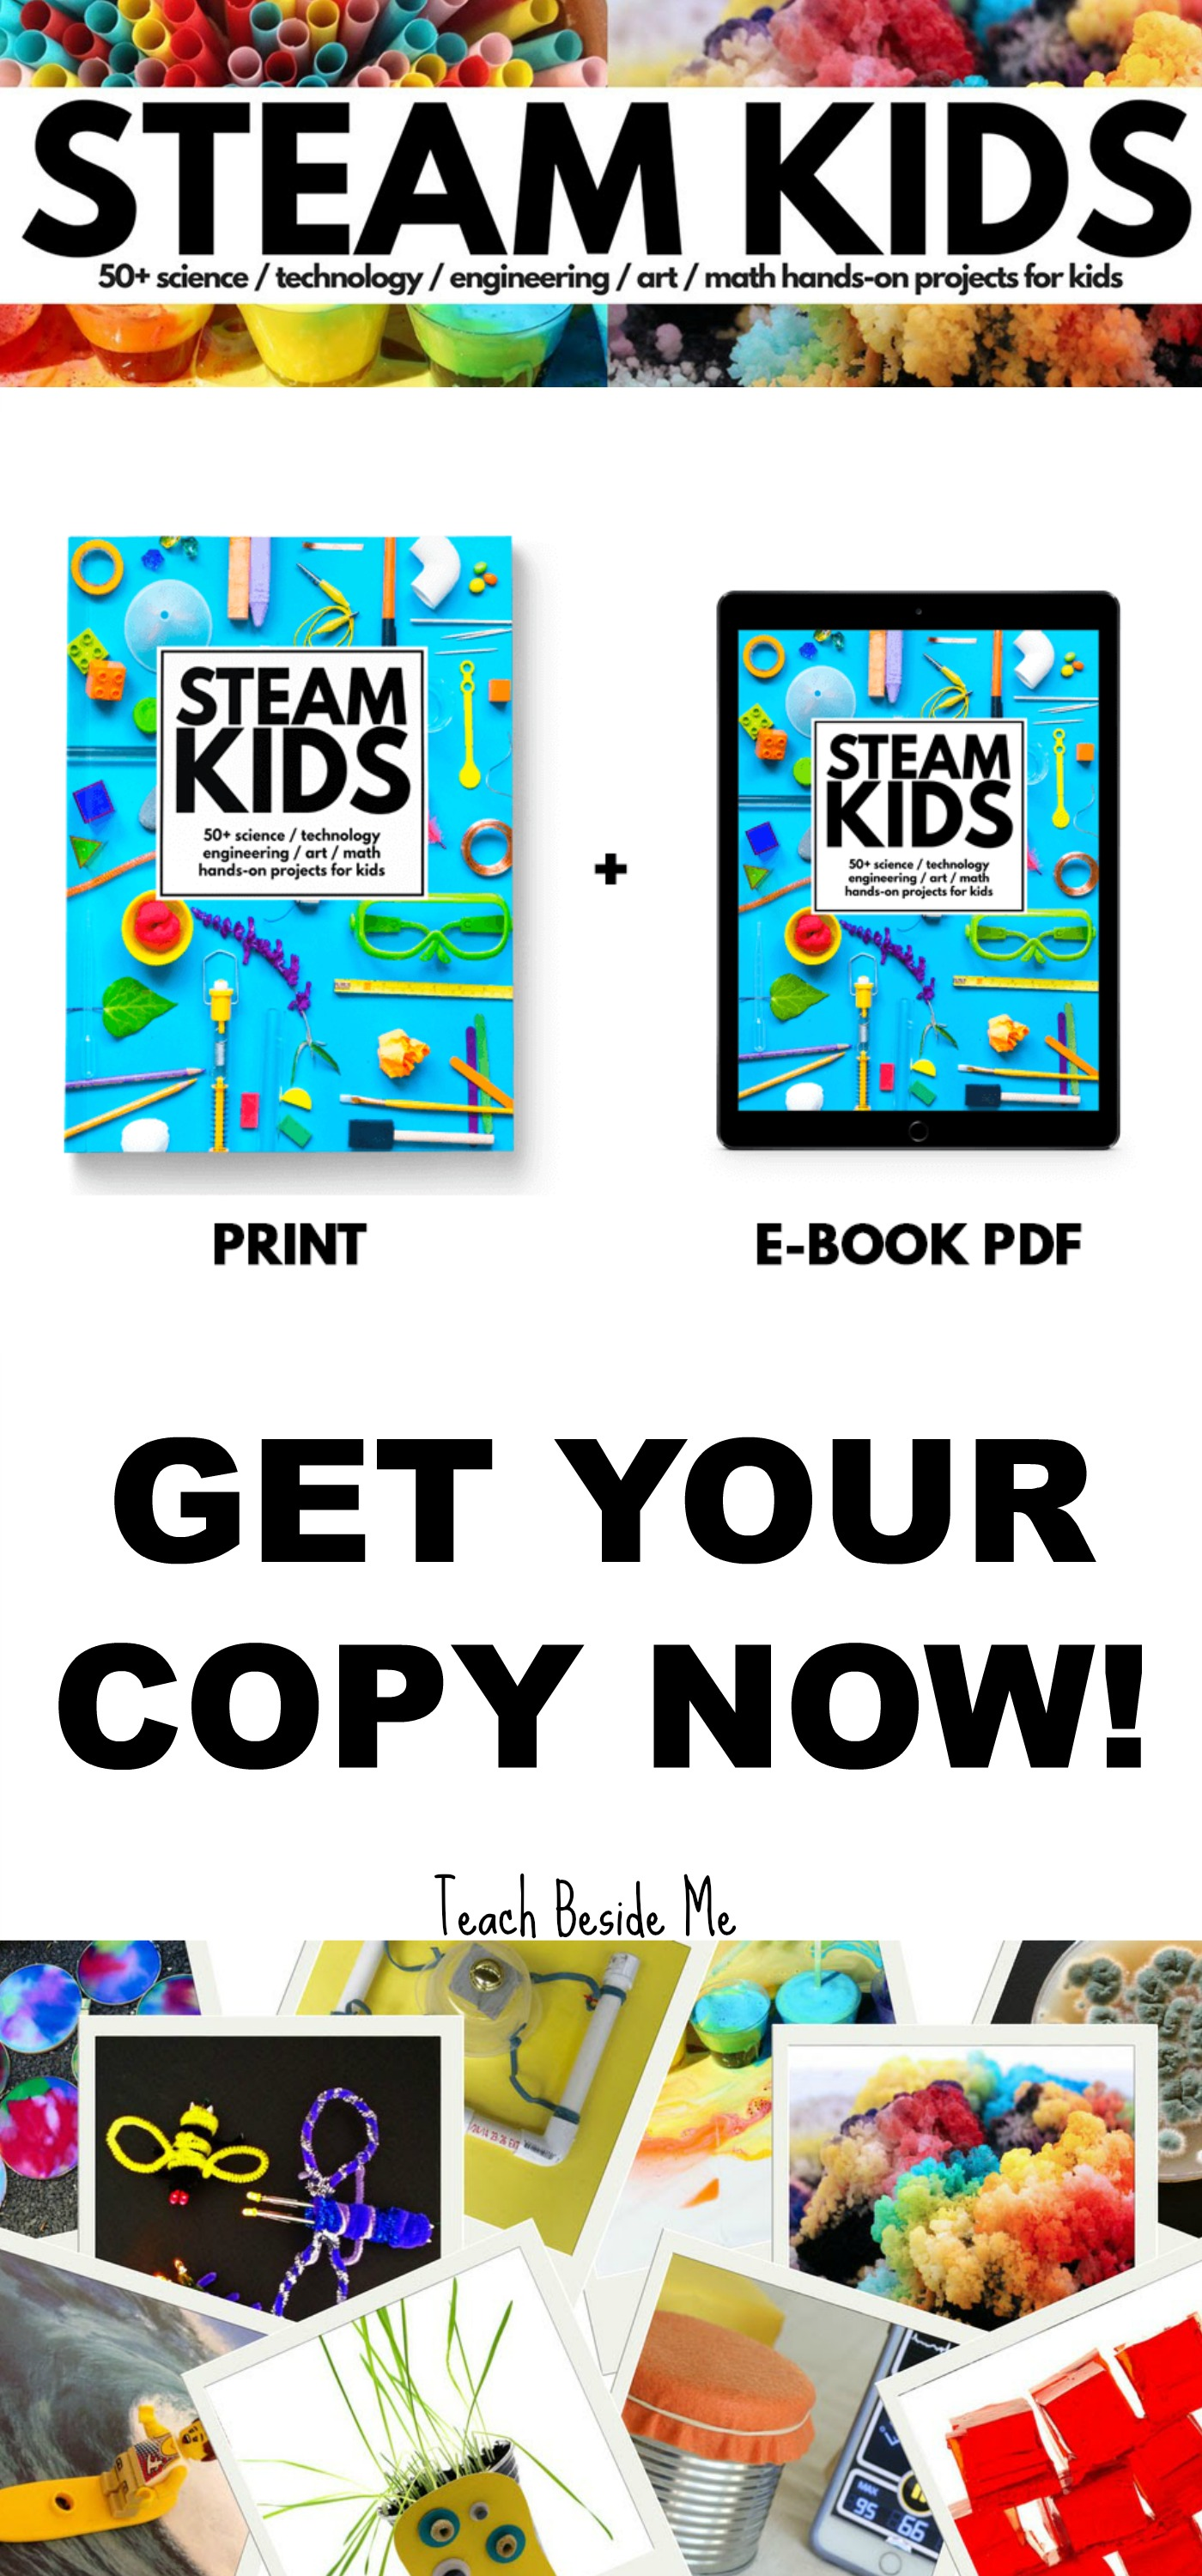 steam-kids-book-available-now